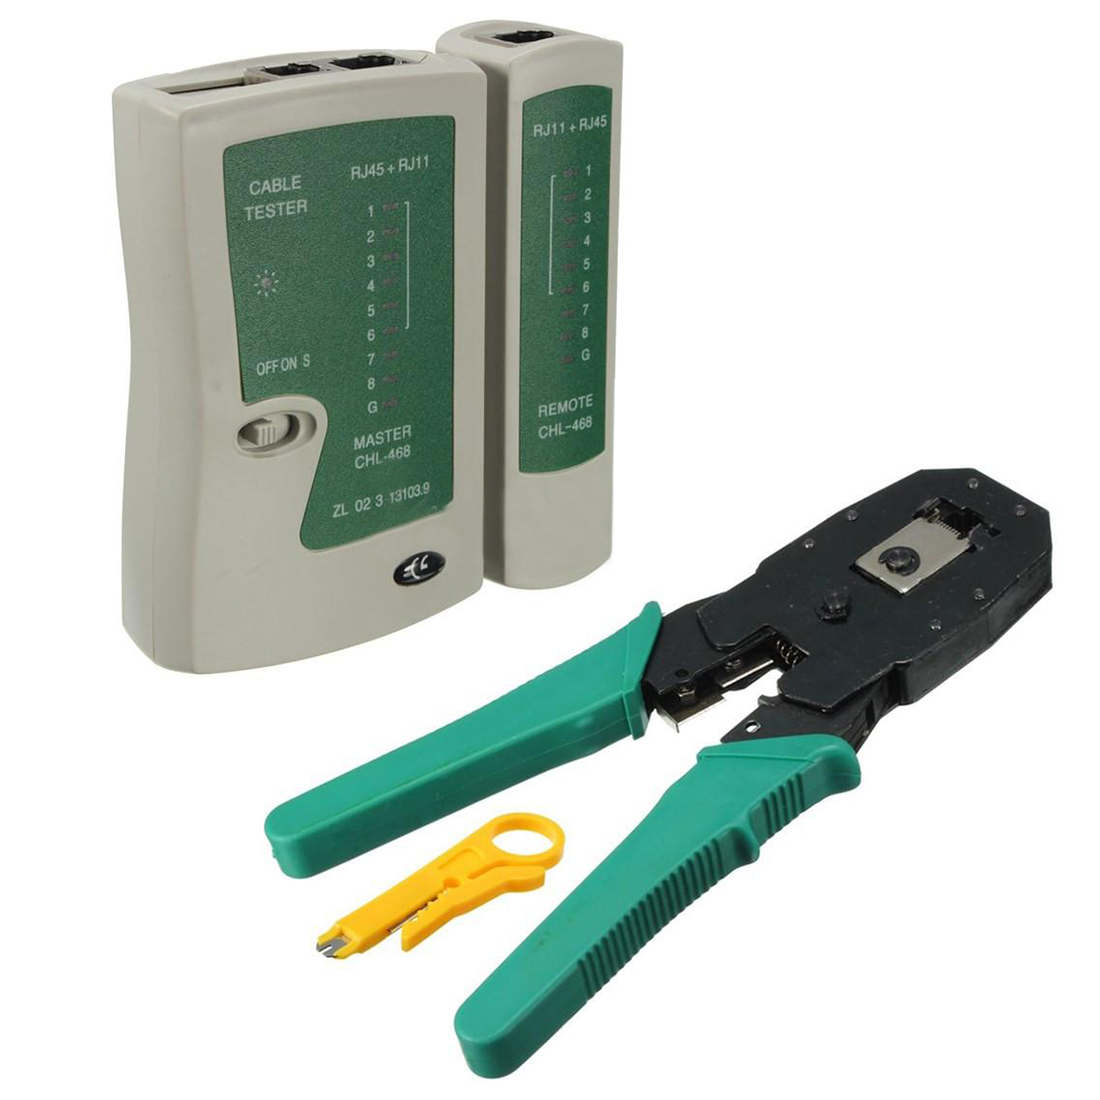 Professional Network Cable <font><b>Tester</b></font> <font><b>Lan</b></font> <font><b>rj45</b></font> rj11 with Wire Cable Crimper Crimp PC Network Hand Tools Herramientas image